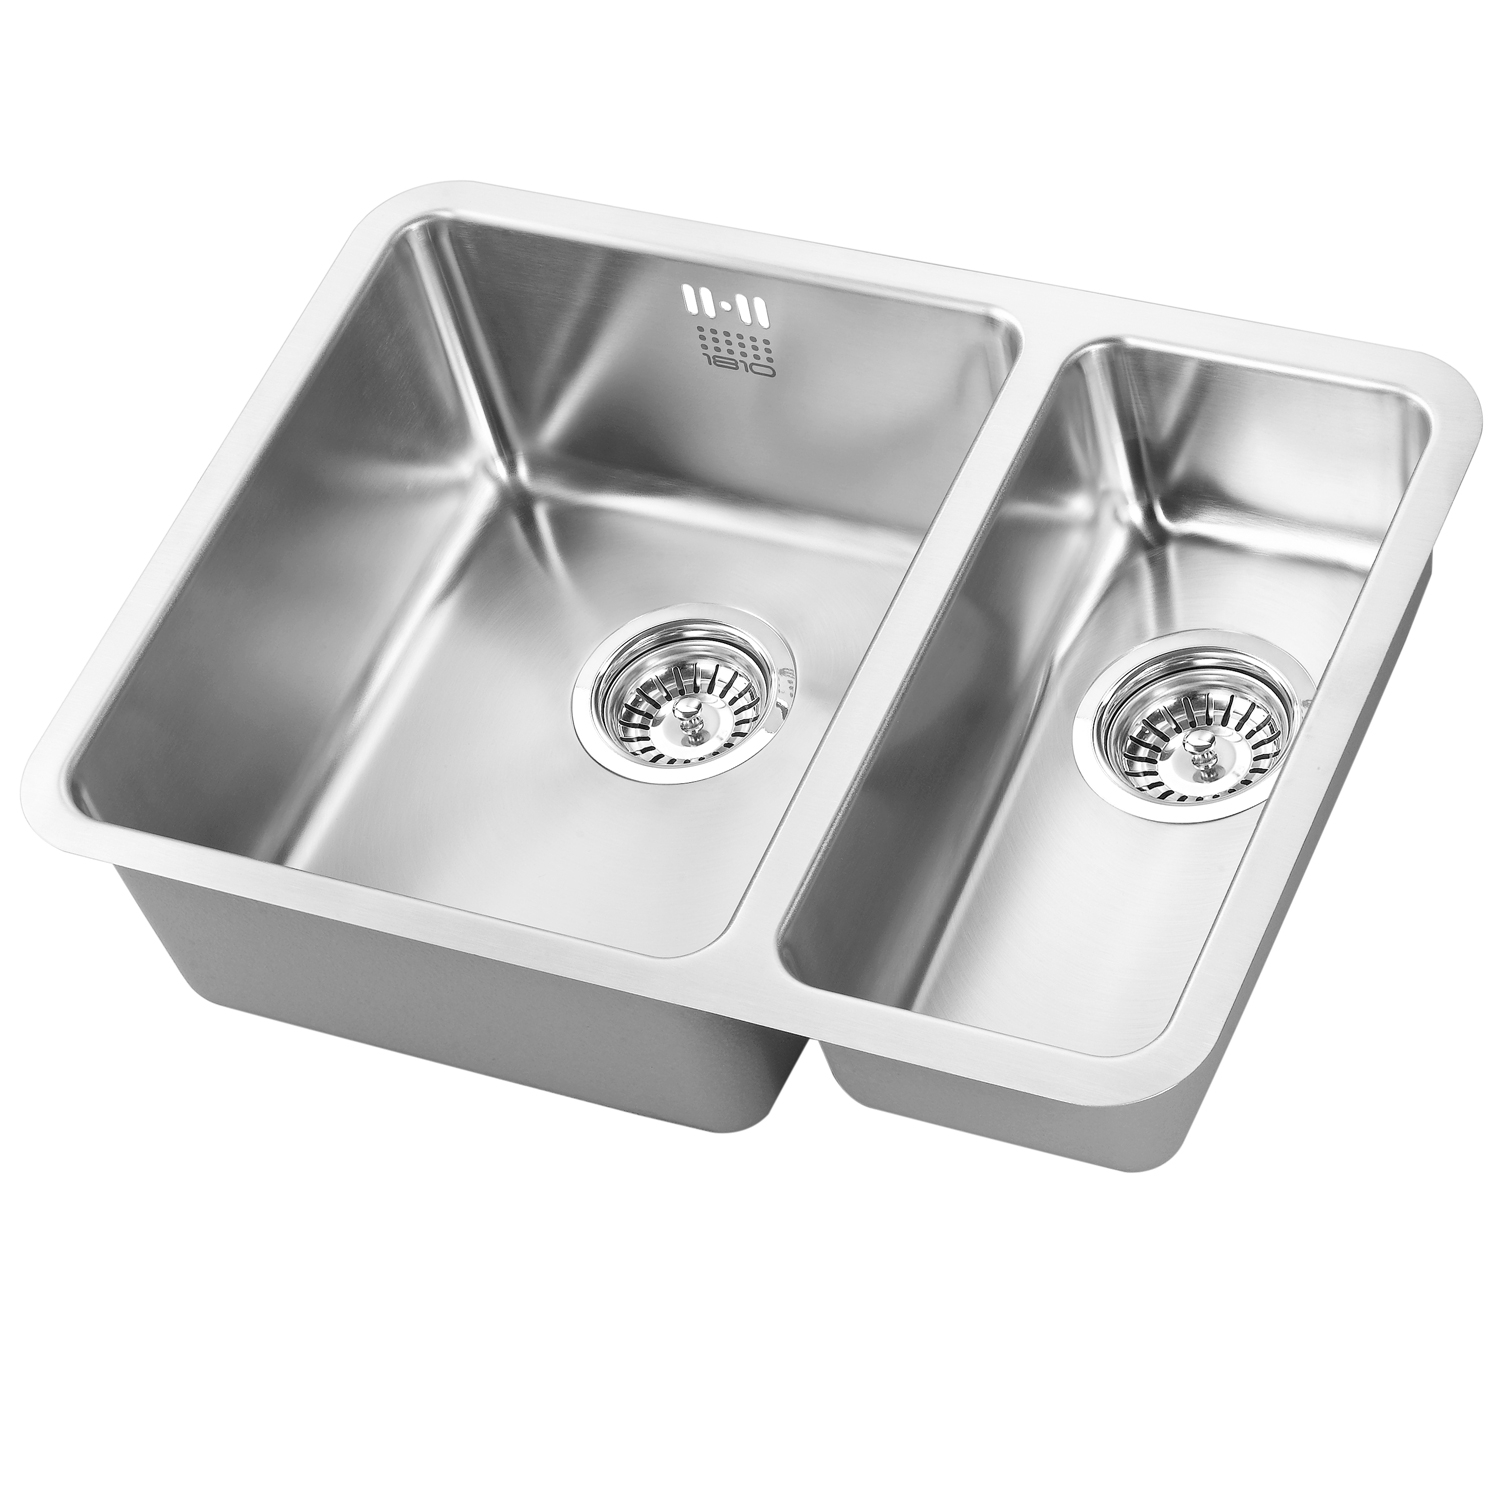 The 1810 Company Luxsoduo25 340/180U 1.5 Bowl Kitchen Sink - Left Handed